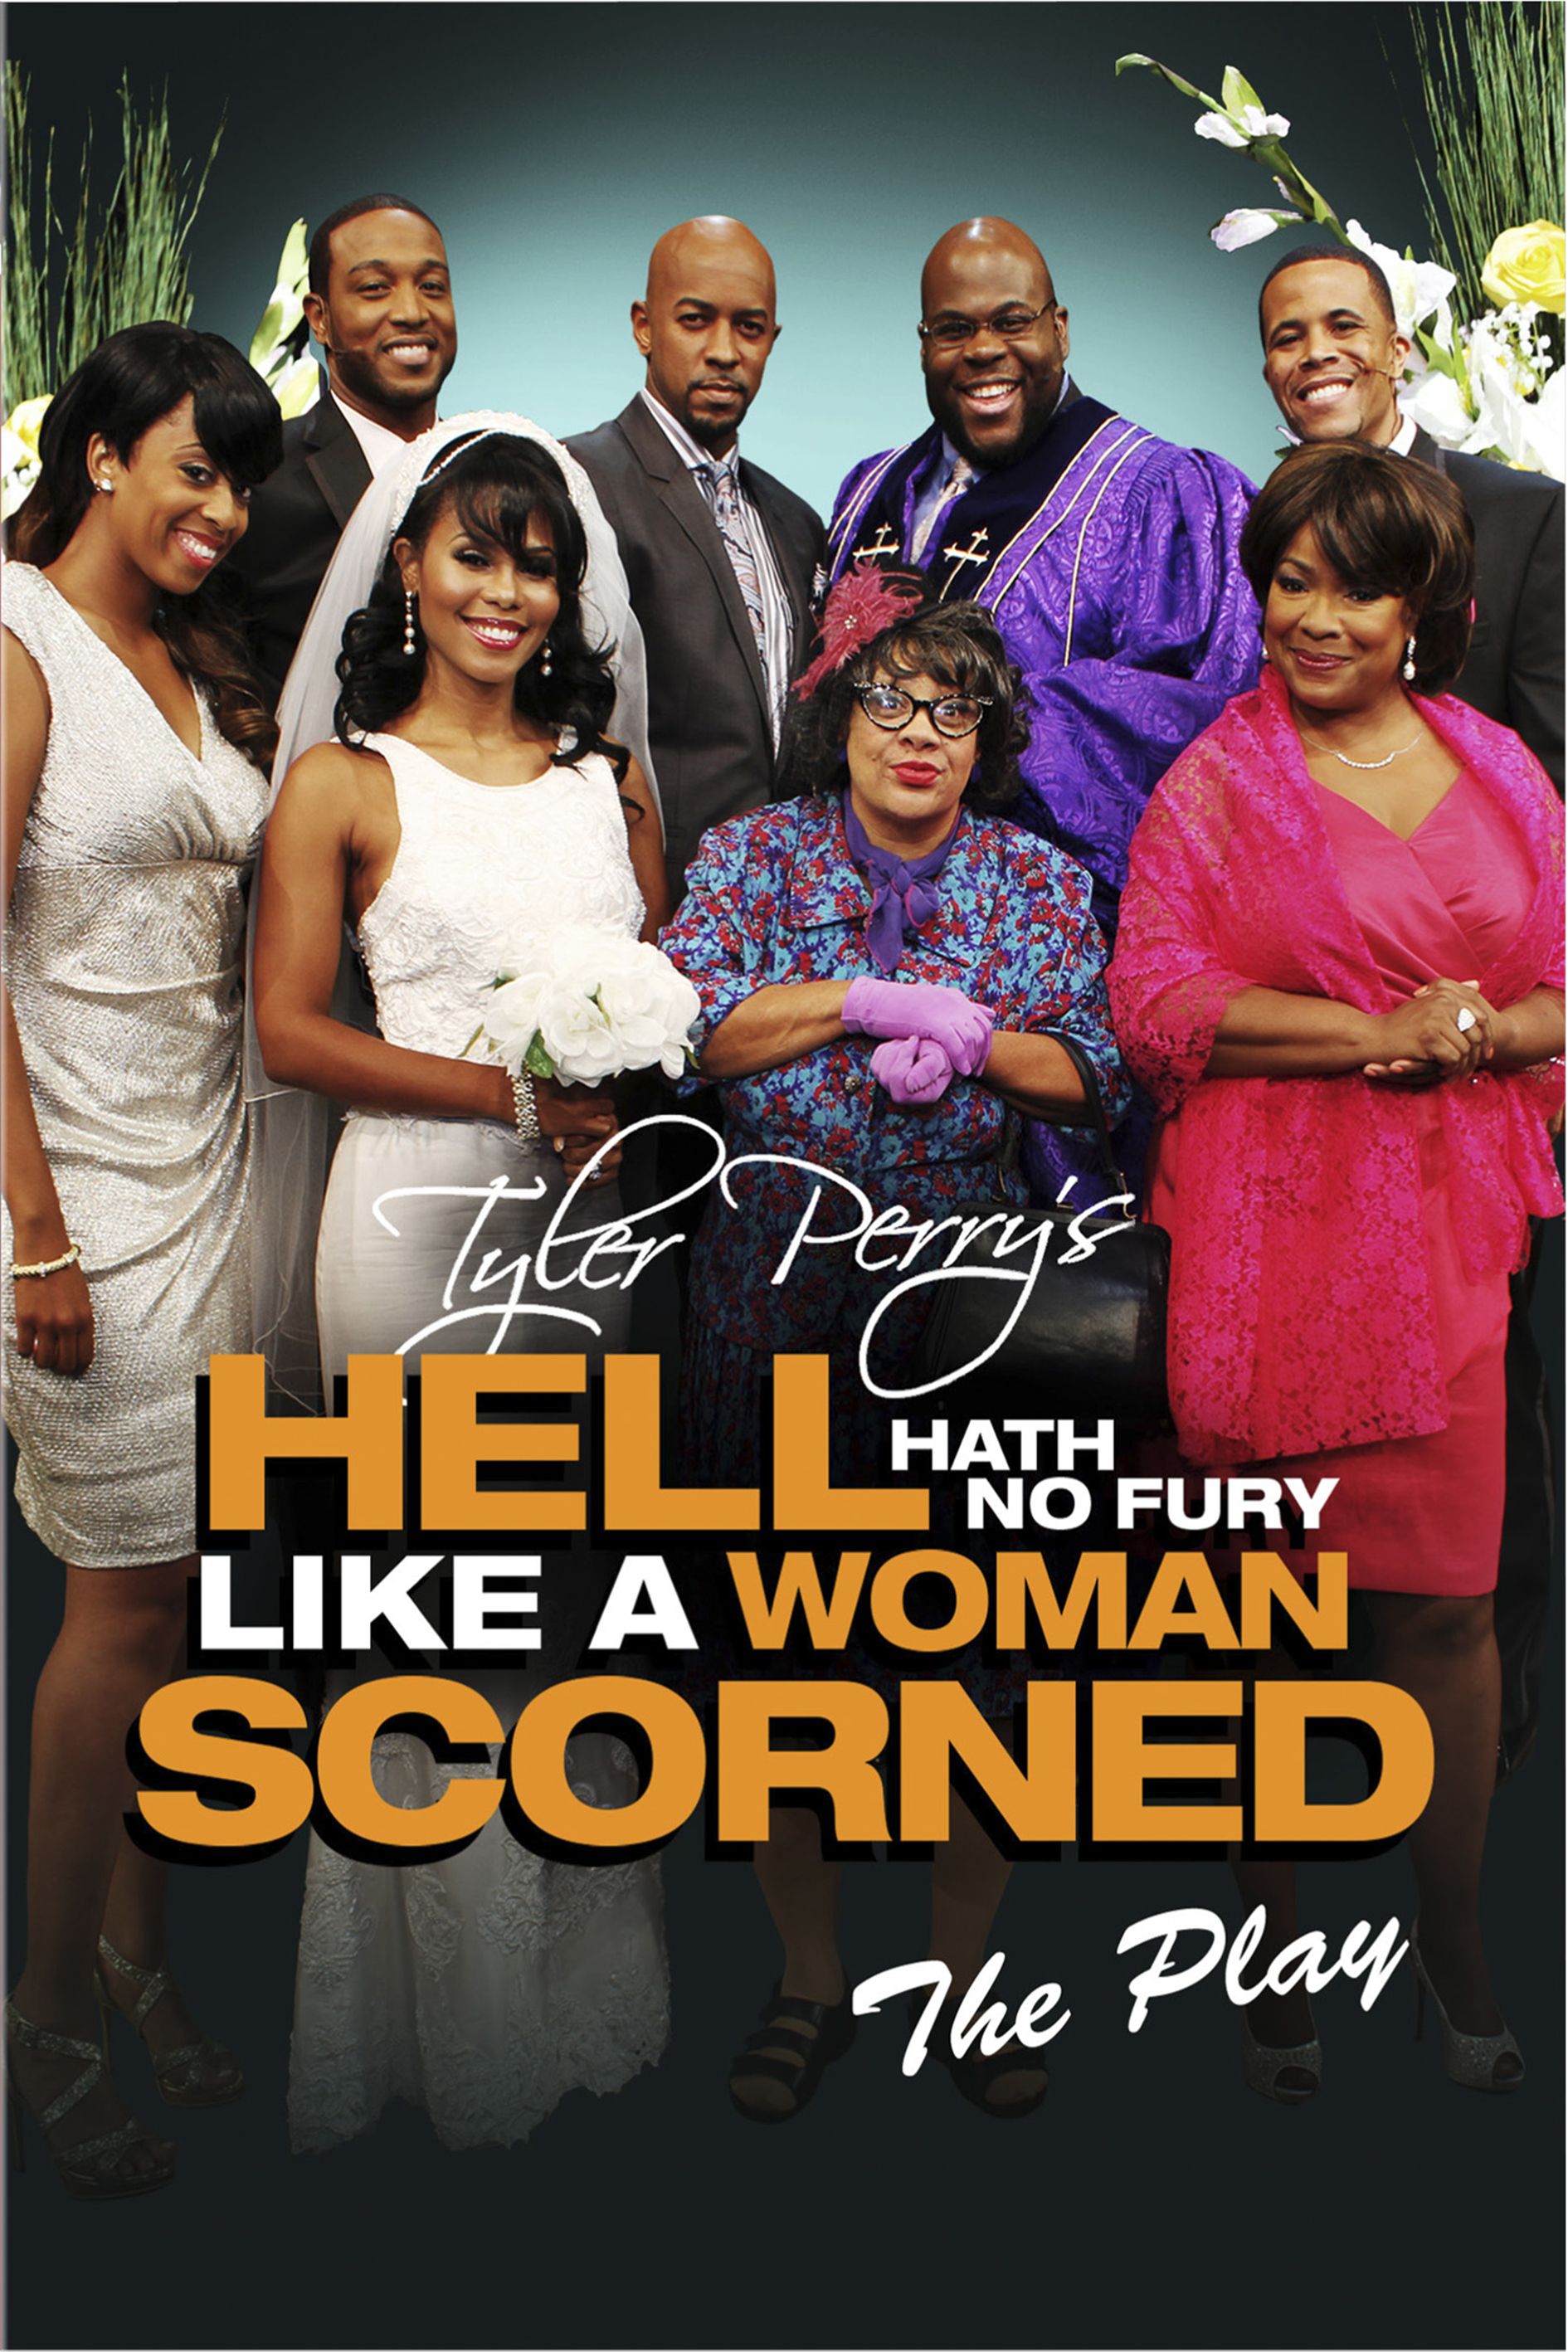 Hell Hath No Fury Like A Woman Scorned [2014 USA Play] Comedy